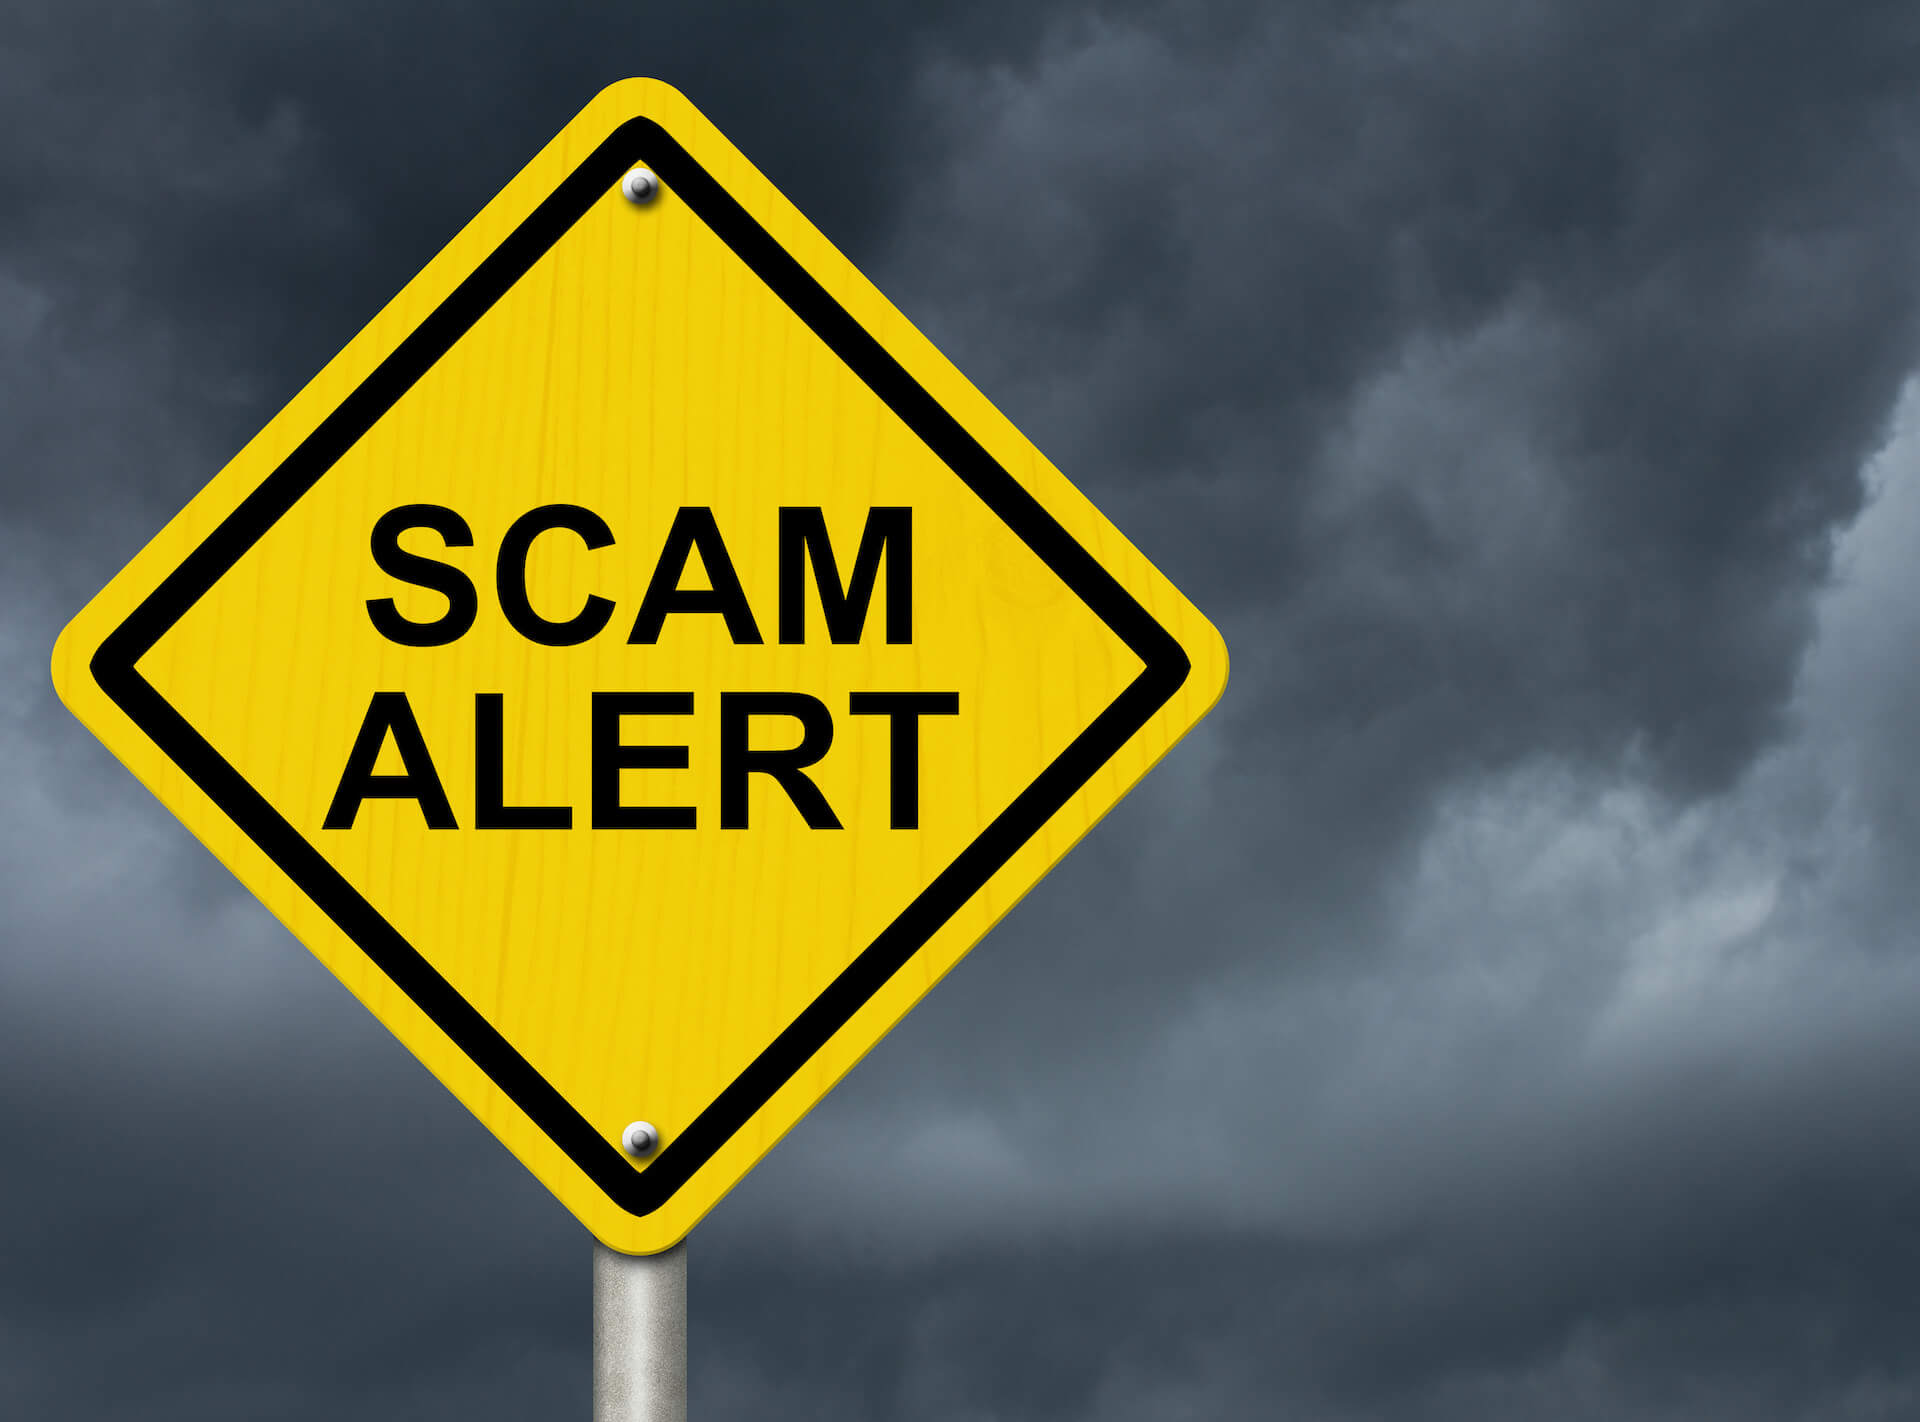 Scam Alert yelloy yield street sign rx